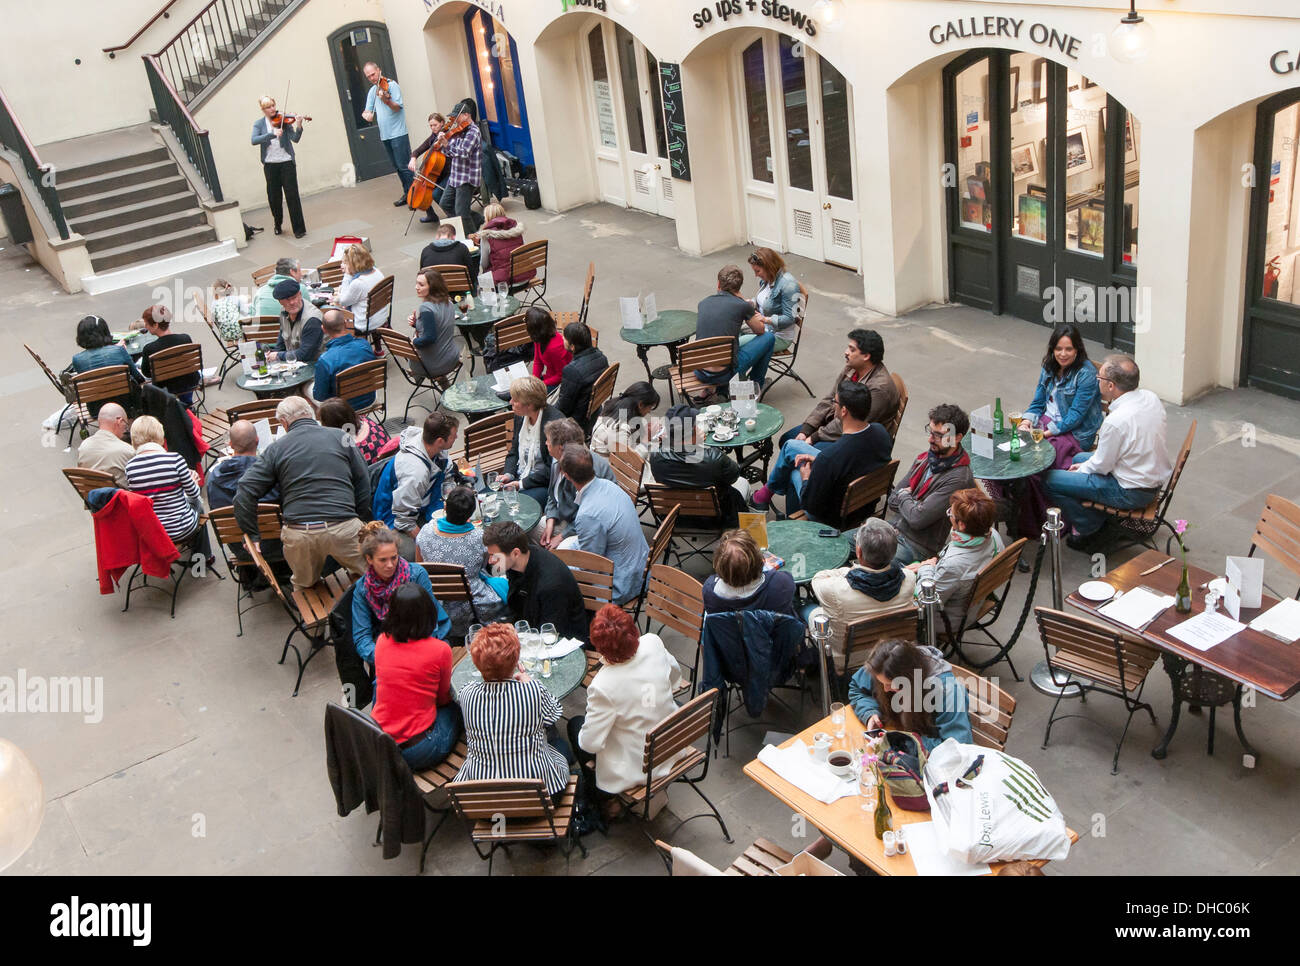 People in Restaurant, Covent Garden Market, London, England, UK - Stock Image